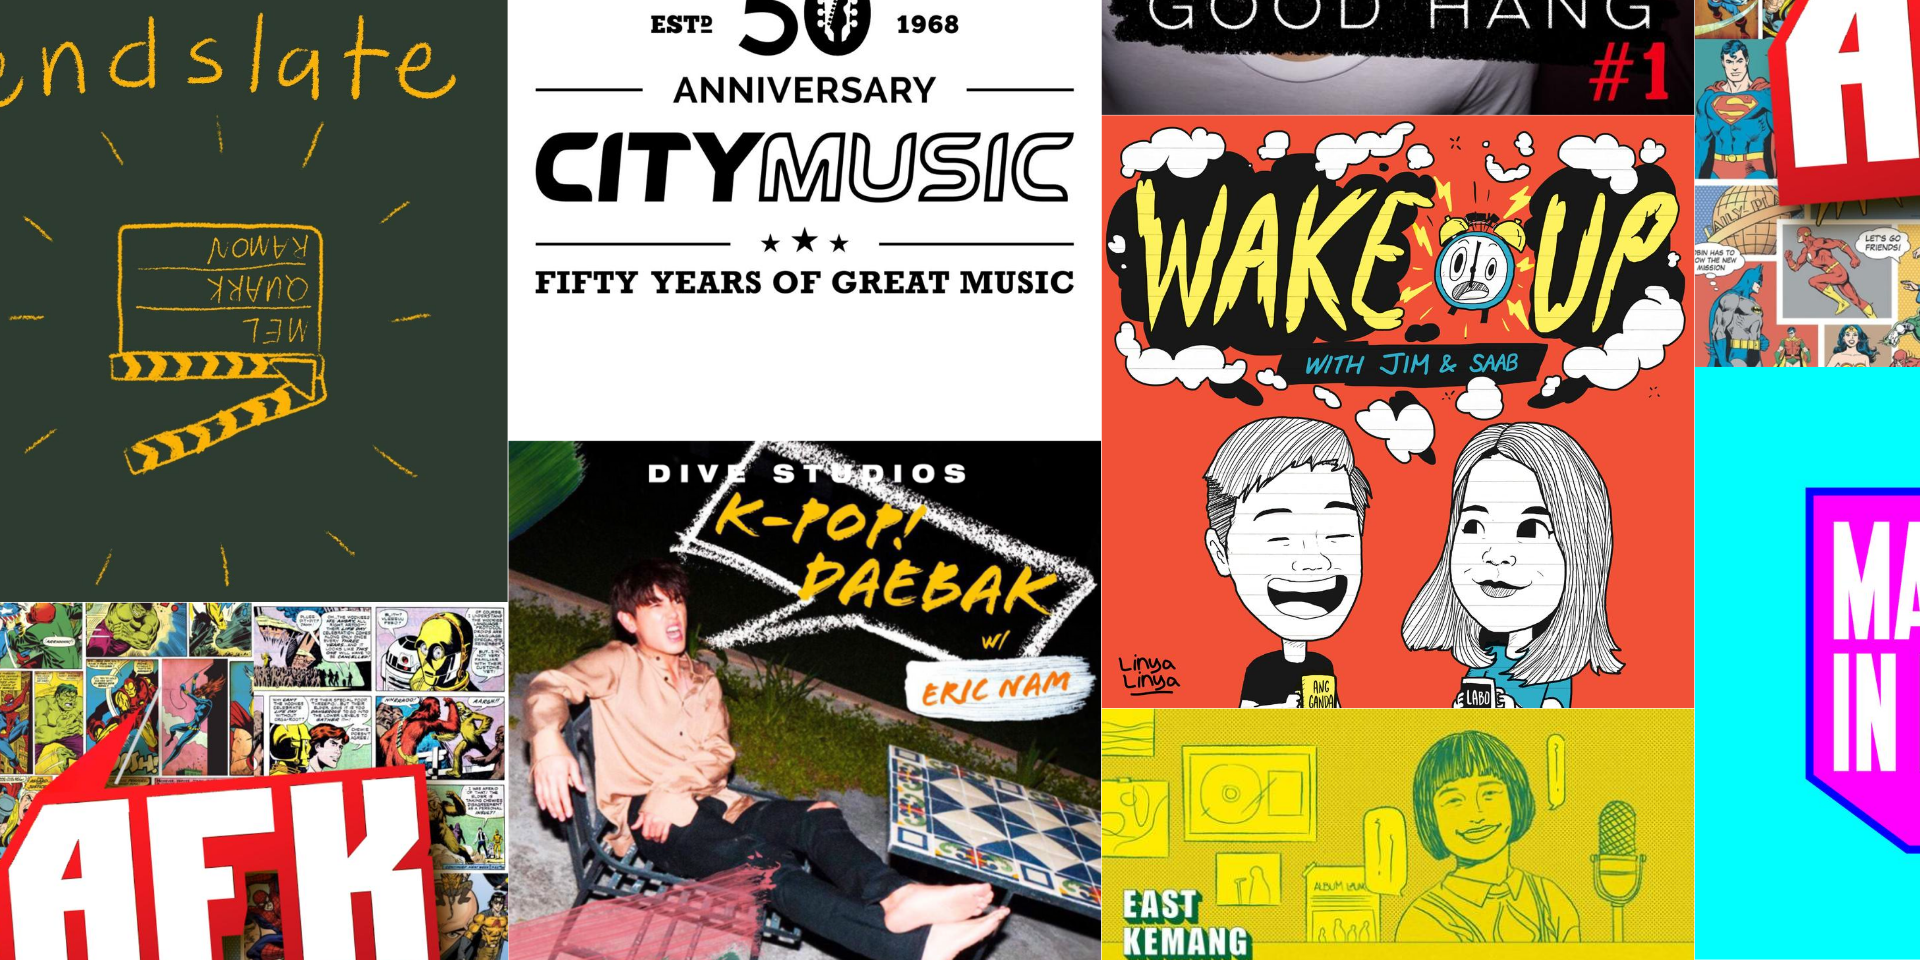 Soundclass, K-pop Daebak, City Music SG, and more - podcasts from the region that you should listen to